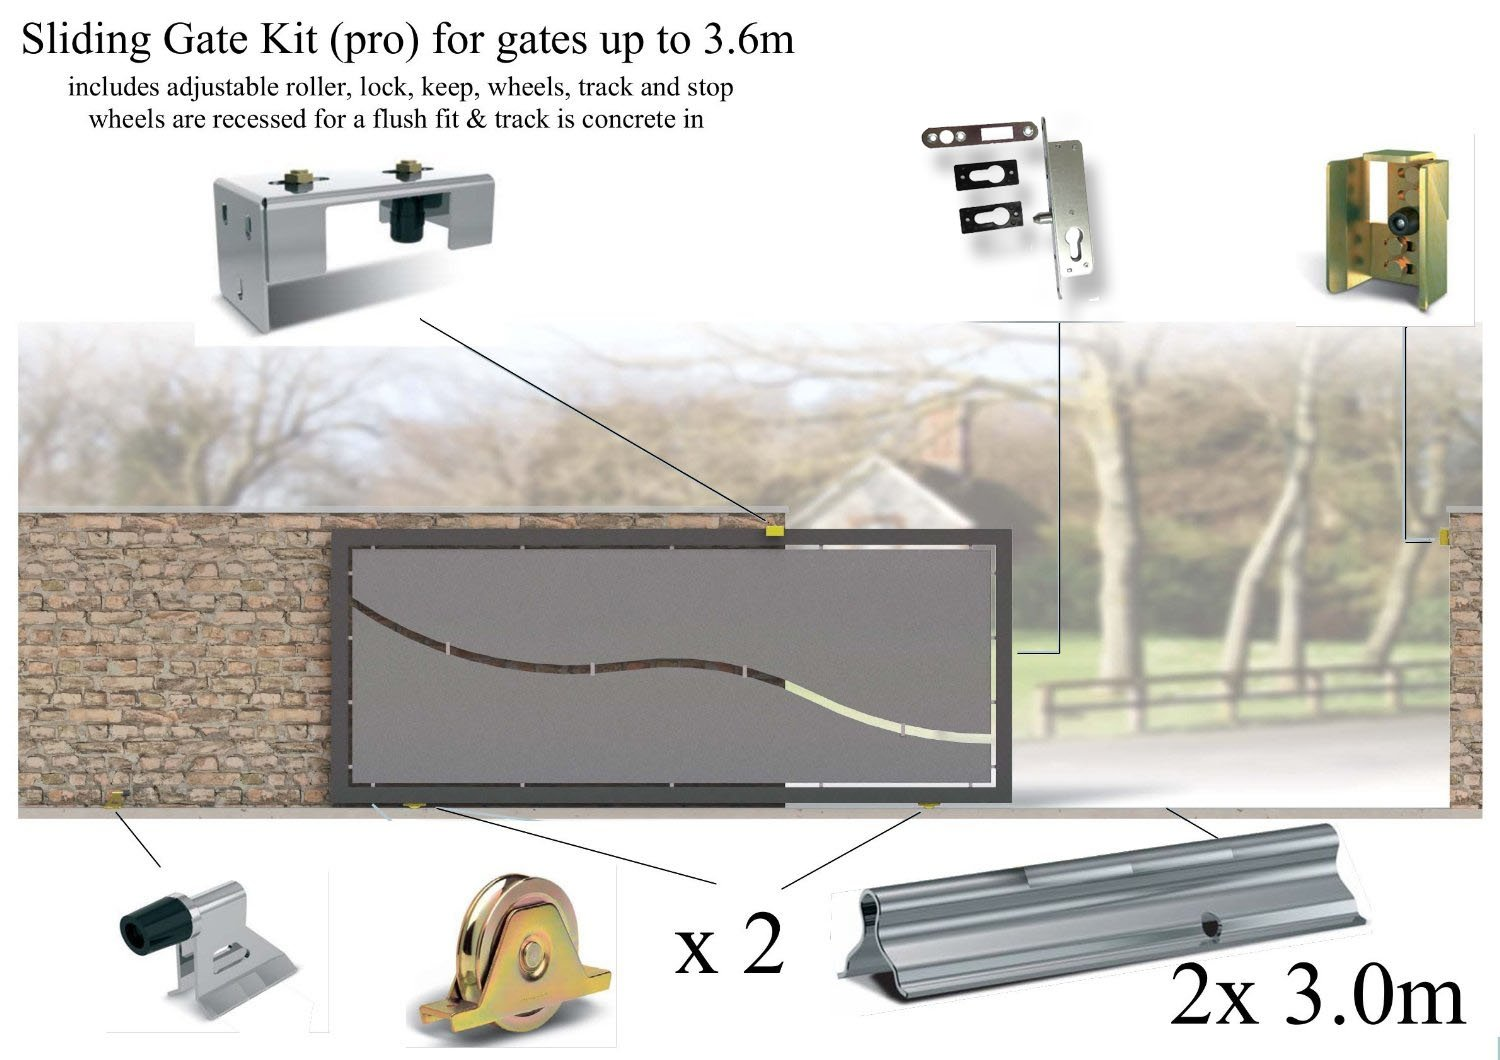 Concrete in Sliding Gate Kits, contains